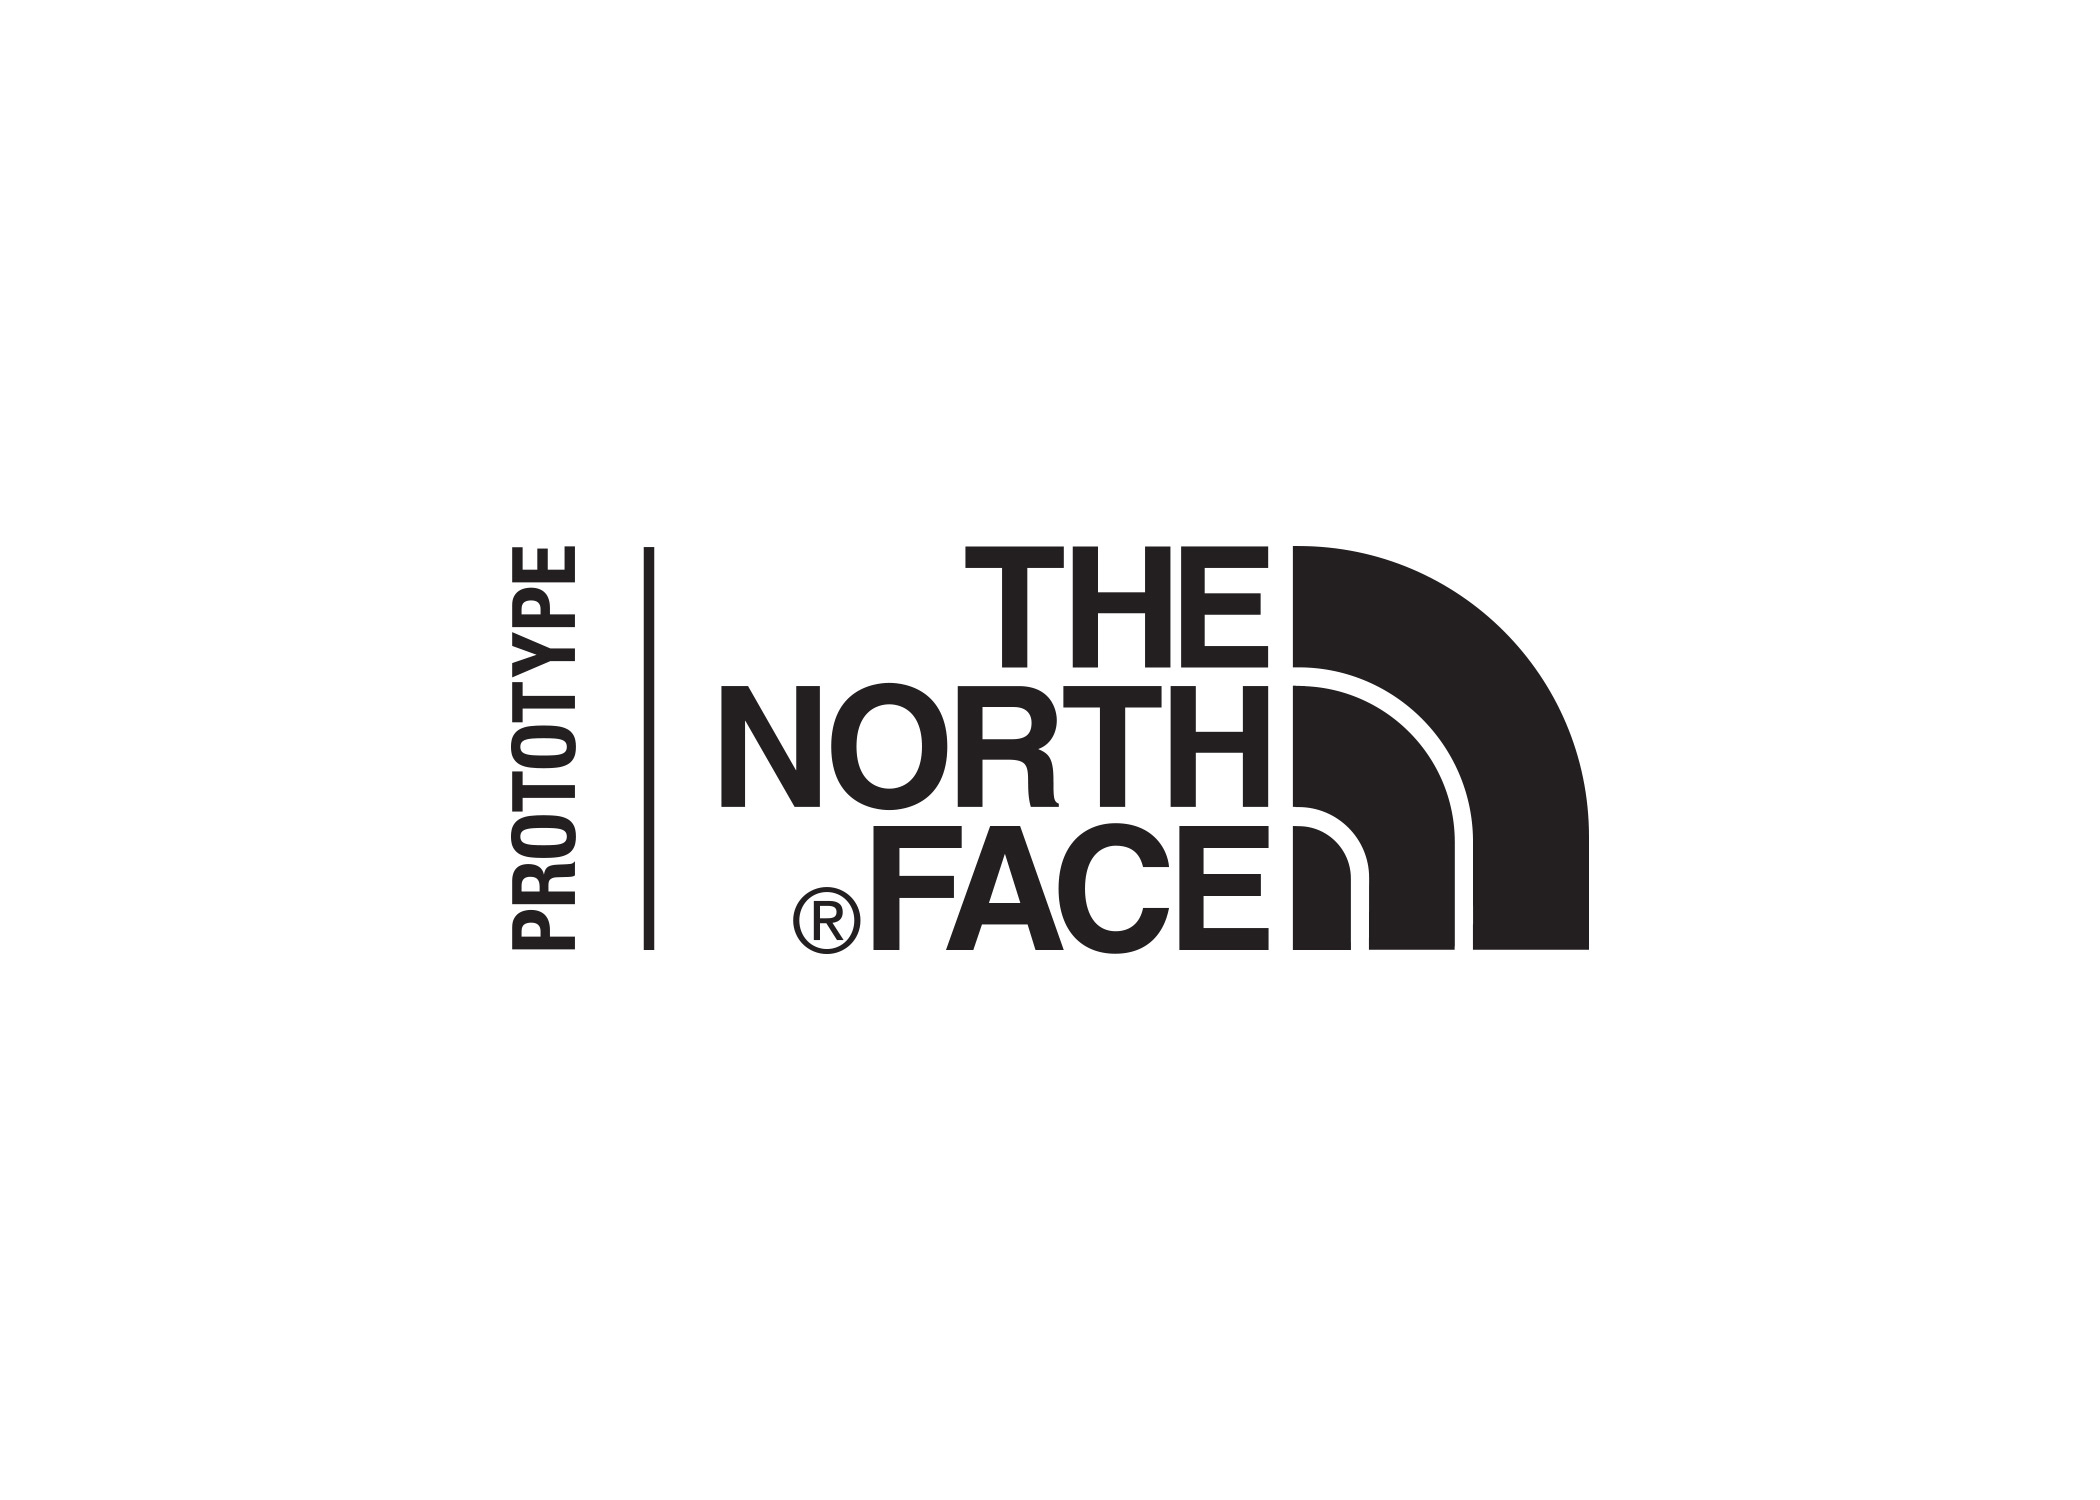 quality design f724a f6905 The North Face® Store at 134 N. 6th St., Brooklyn, NY, 11249 ...